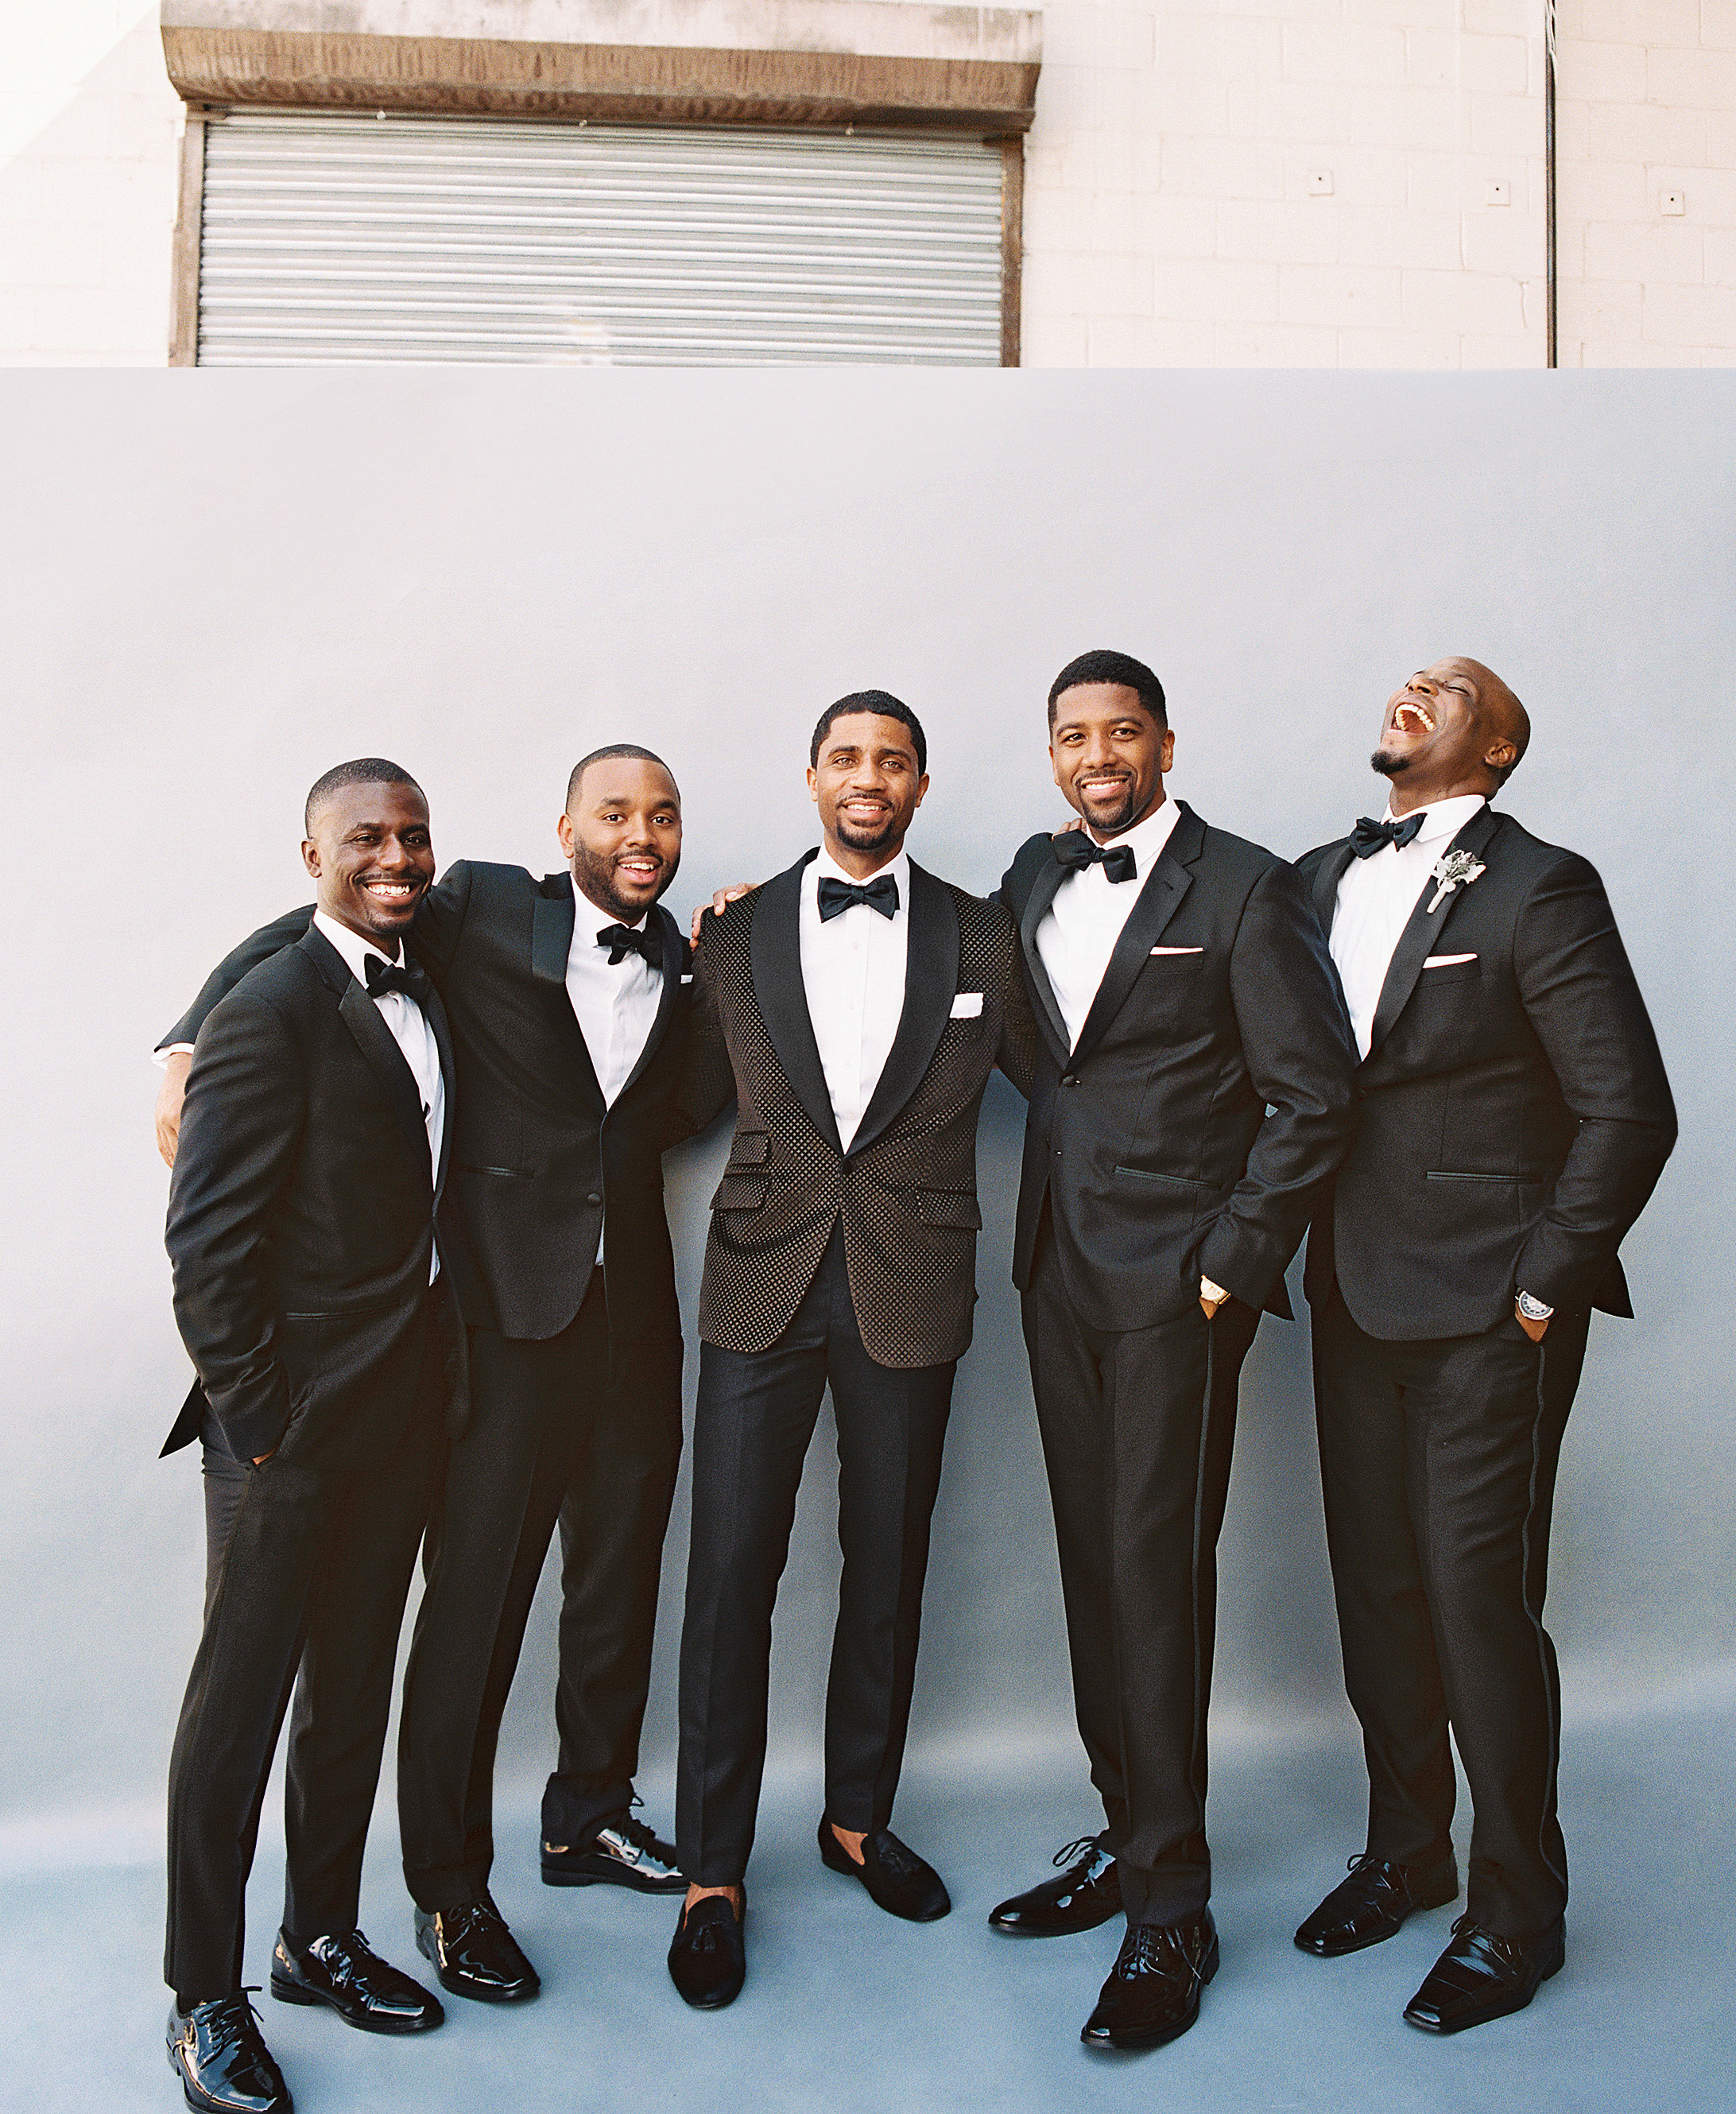 Should the Groom Wear a Suit or a Tuxedo on the Wedding Day?